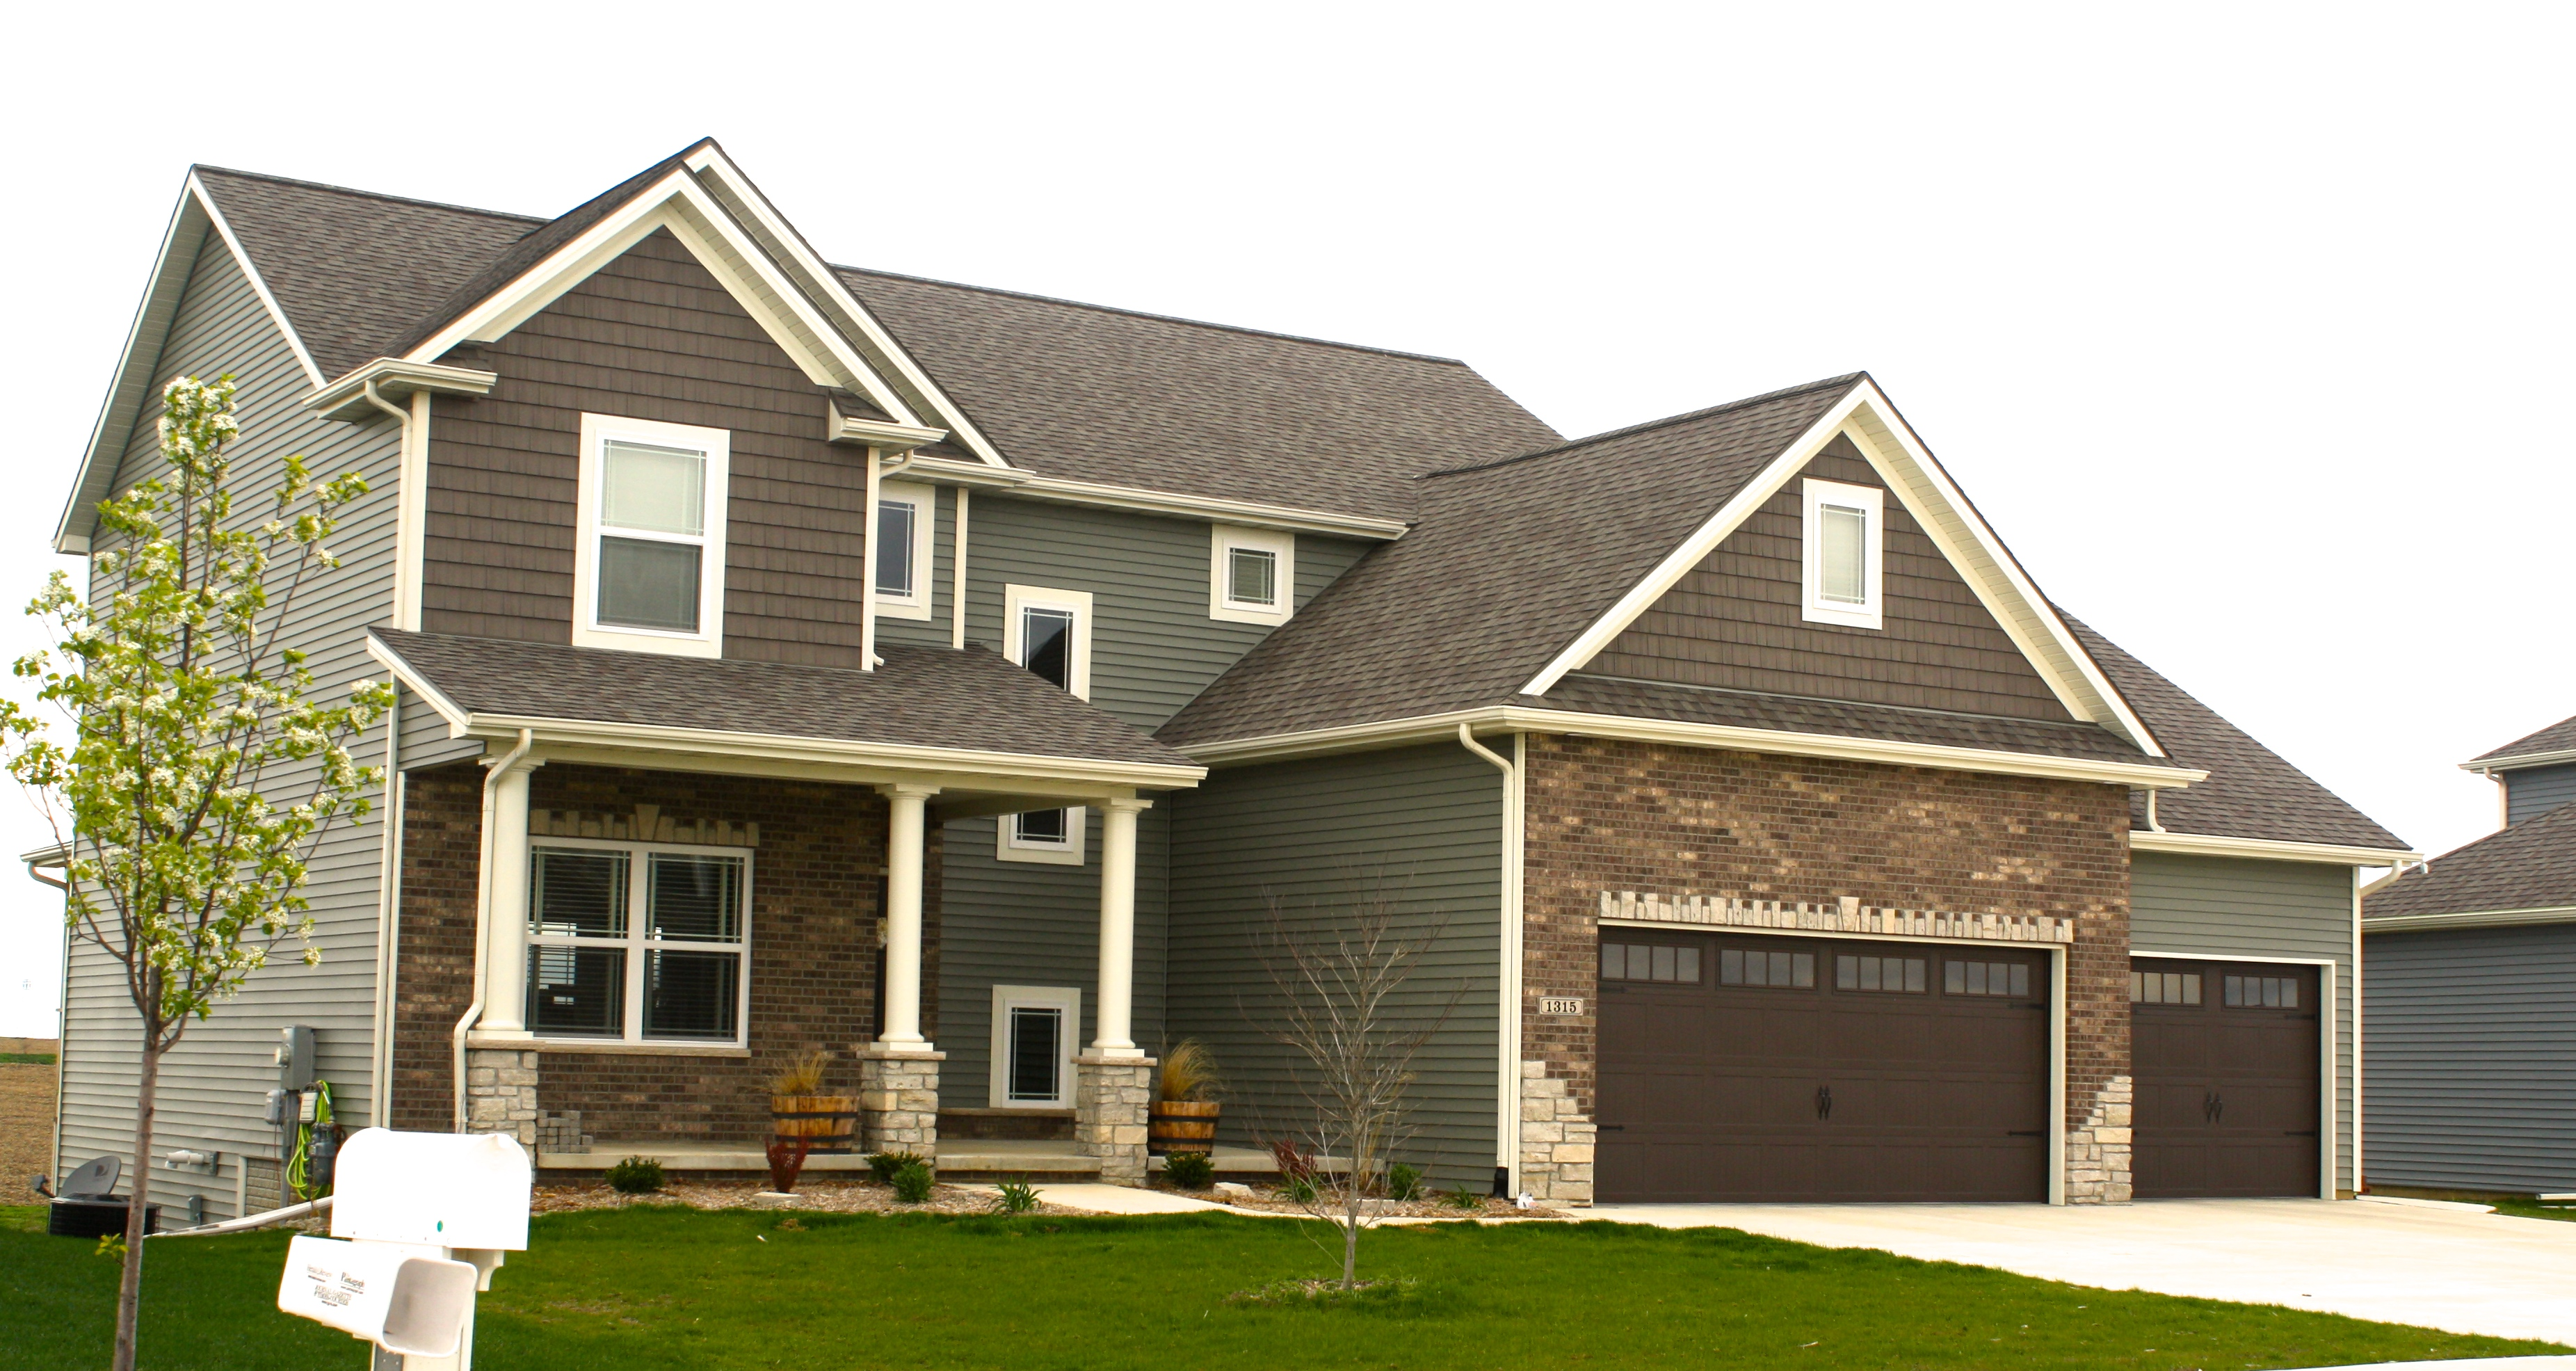 mastic-quiet-willow-siding-ct-northwoods-722-shake-in-sable-cameo-trim-landmark-weatheredwood-shingles-bloomington-il-the-groves.jpg